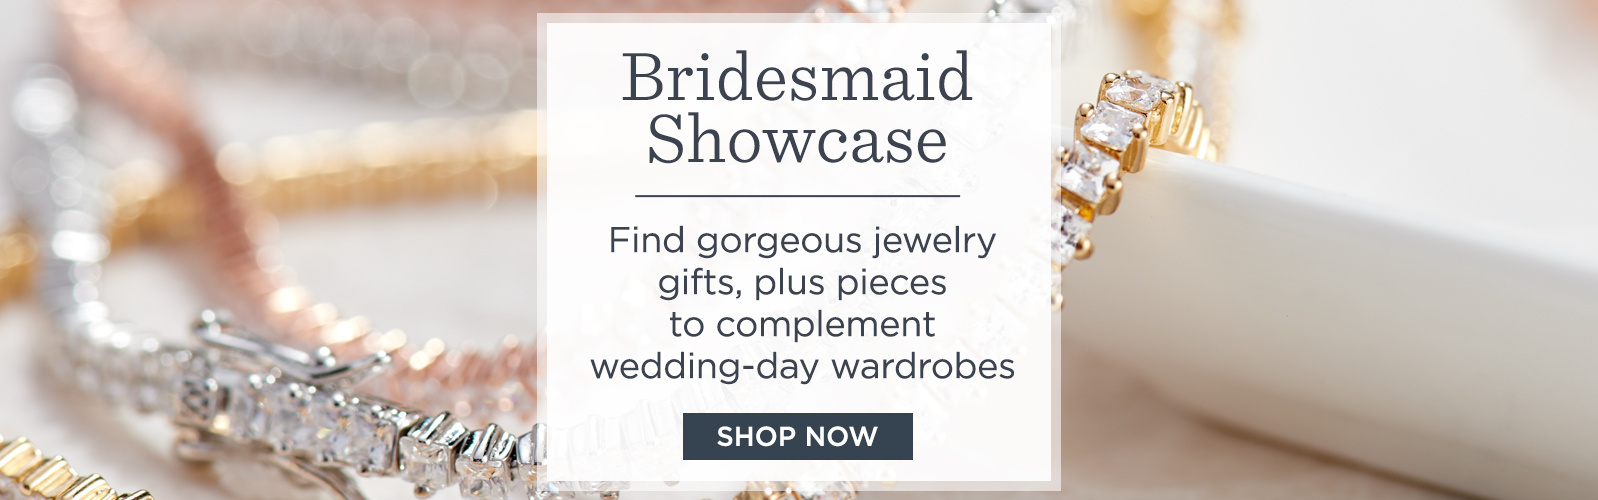 Bridesmaid Showcase - Find gorgeous jewelry gifts, plus pieces to complement wedding-day wardrobes - SHOP NOW